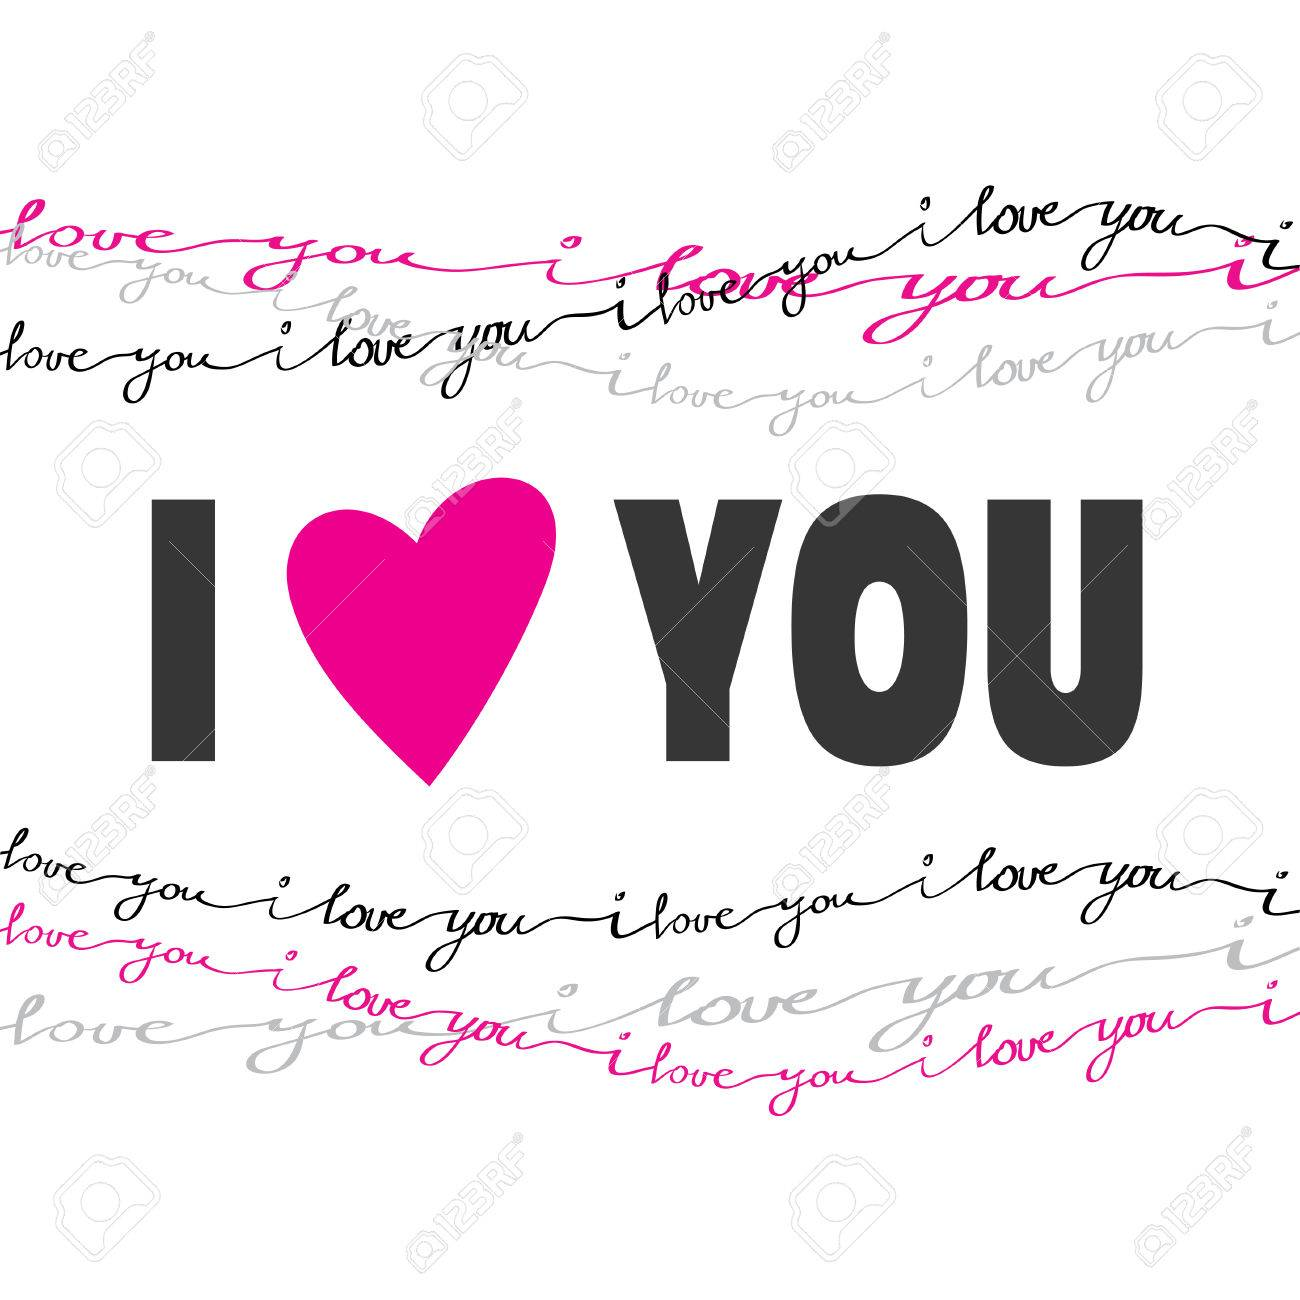 Valentine love card i love you greeting poster pink gray black valentine love card i love you greeting poster pink gray black handwritten i love you text border frame on white background red heart shape i love you m4hsunfo